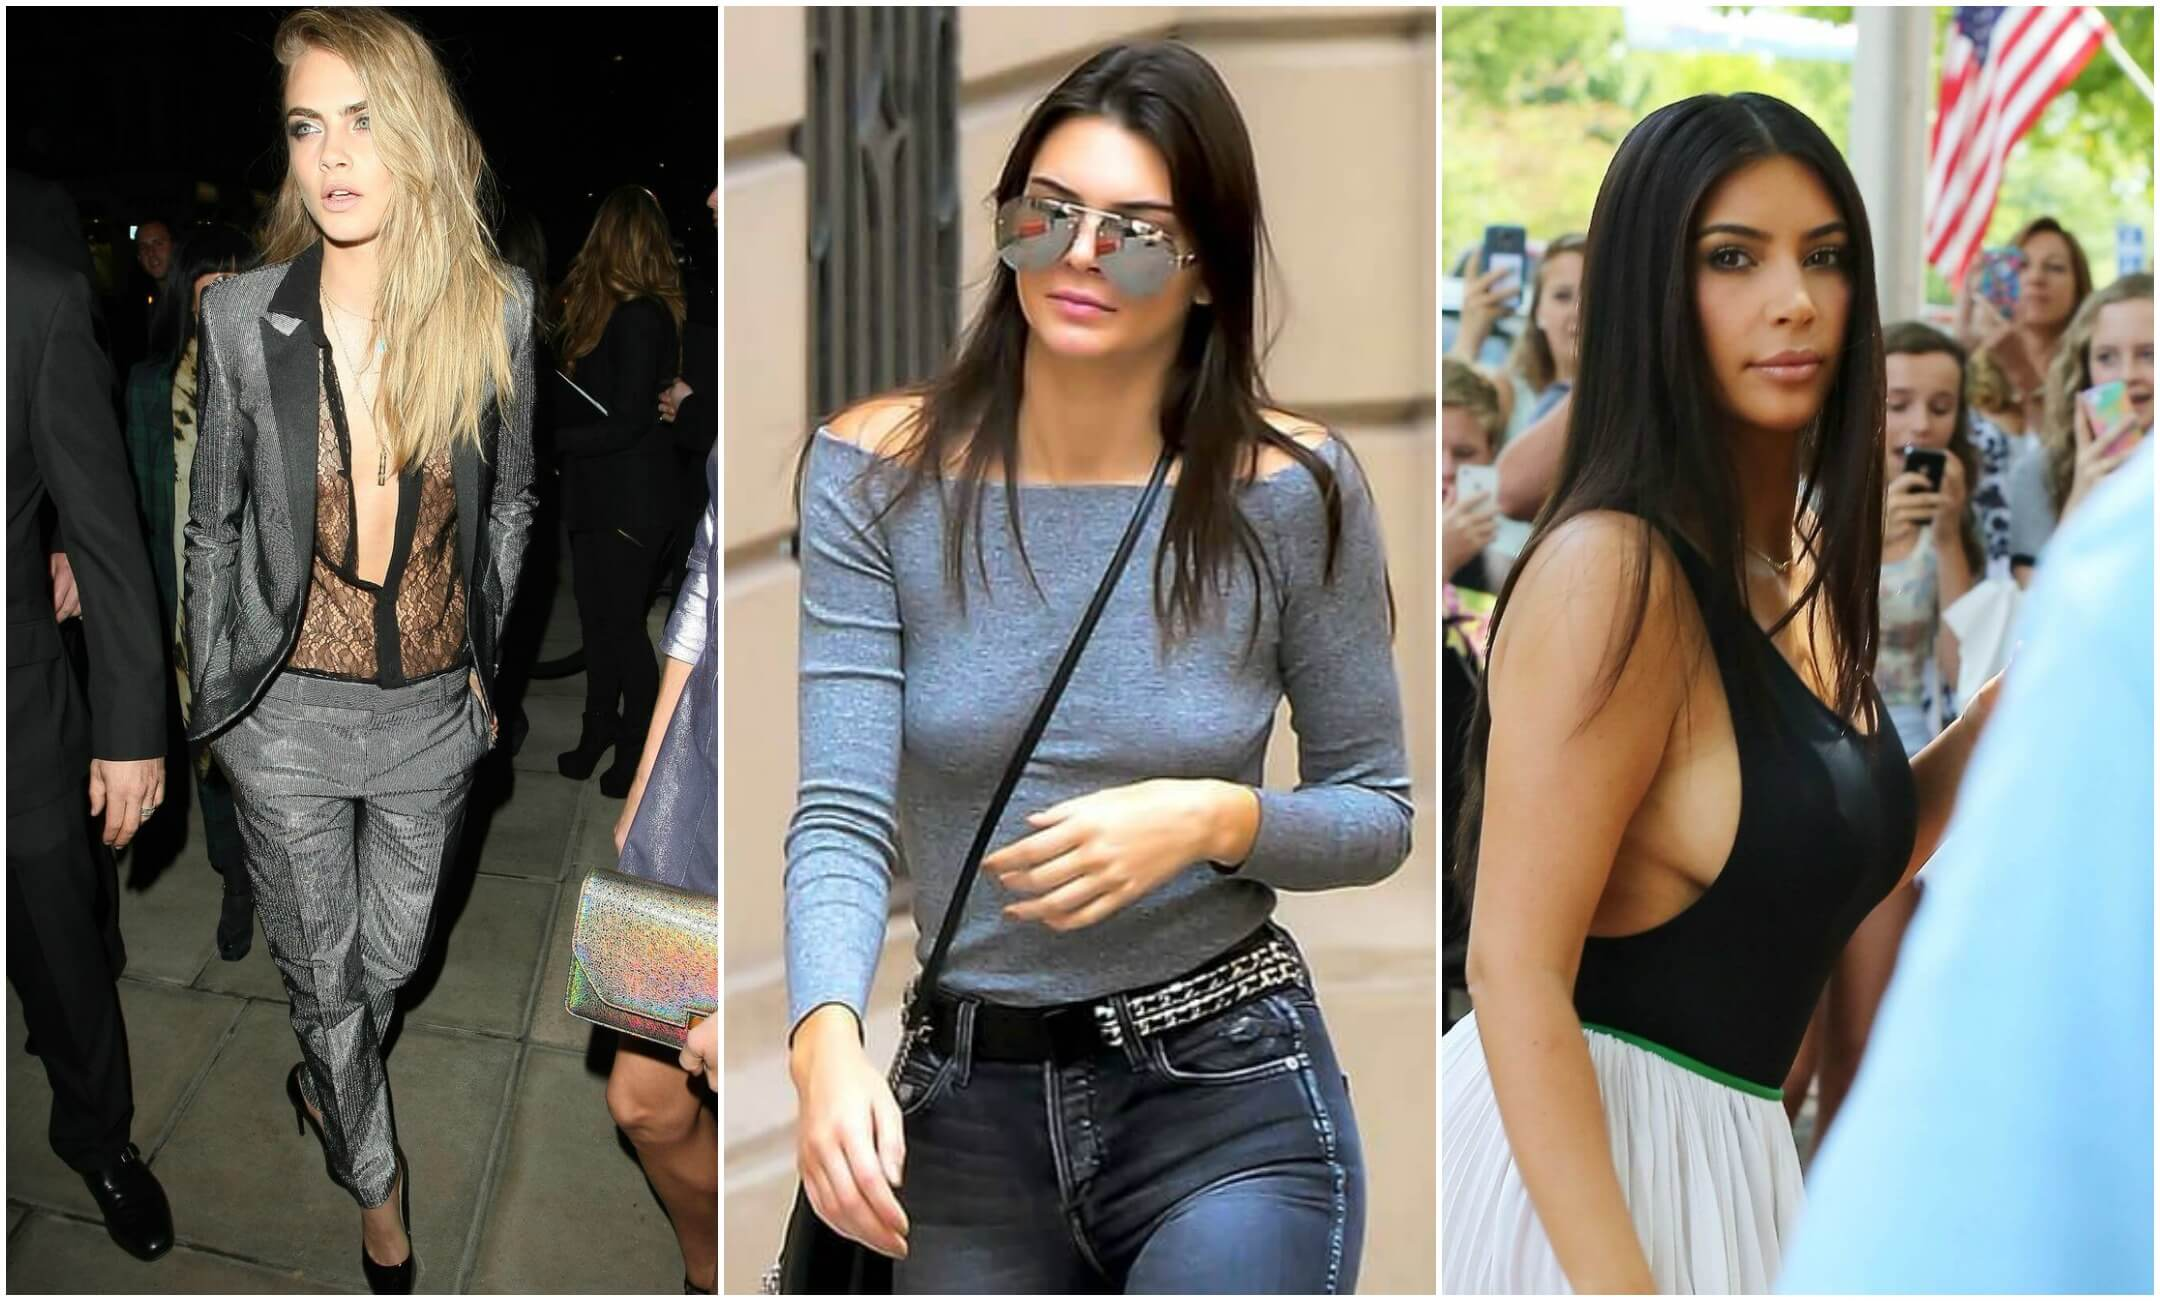 Going Braless For Fashion Bra Doctors Blog By Now